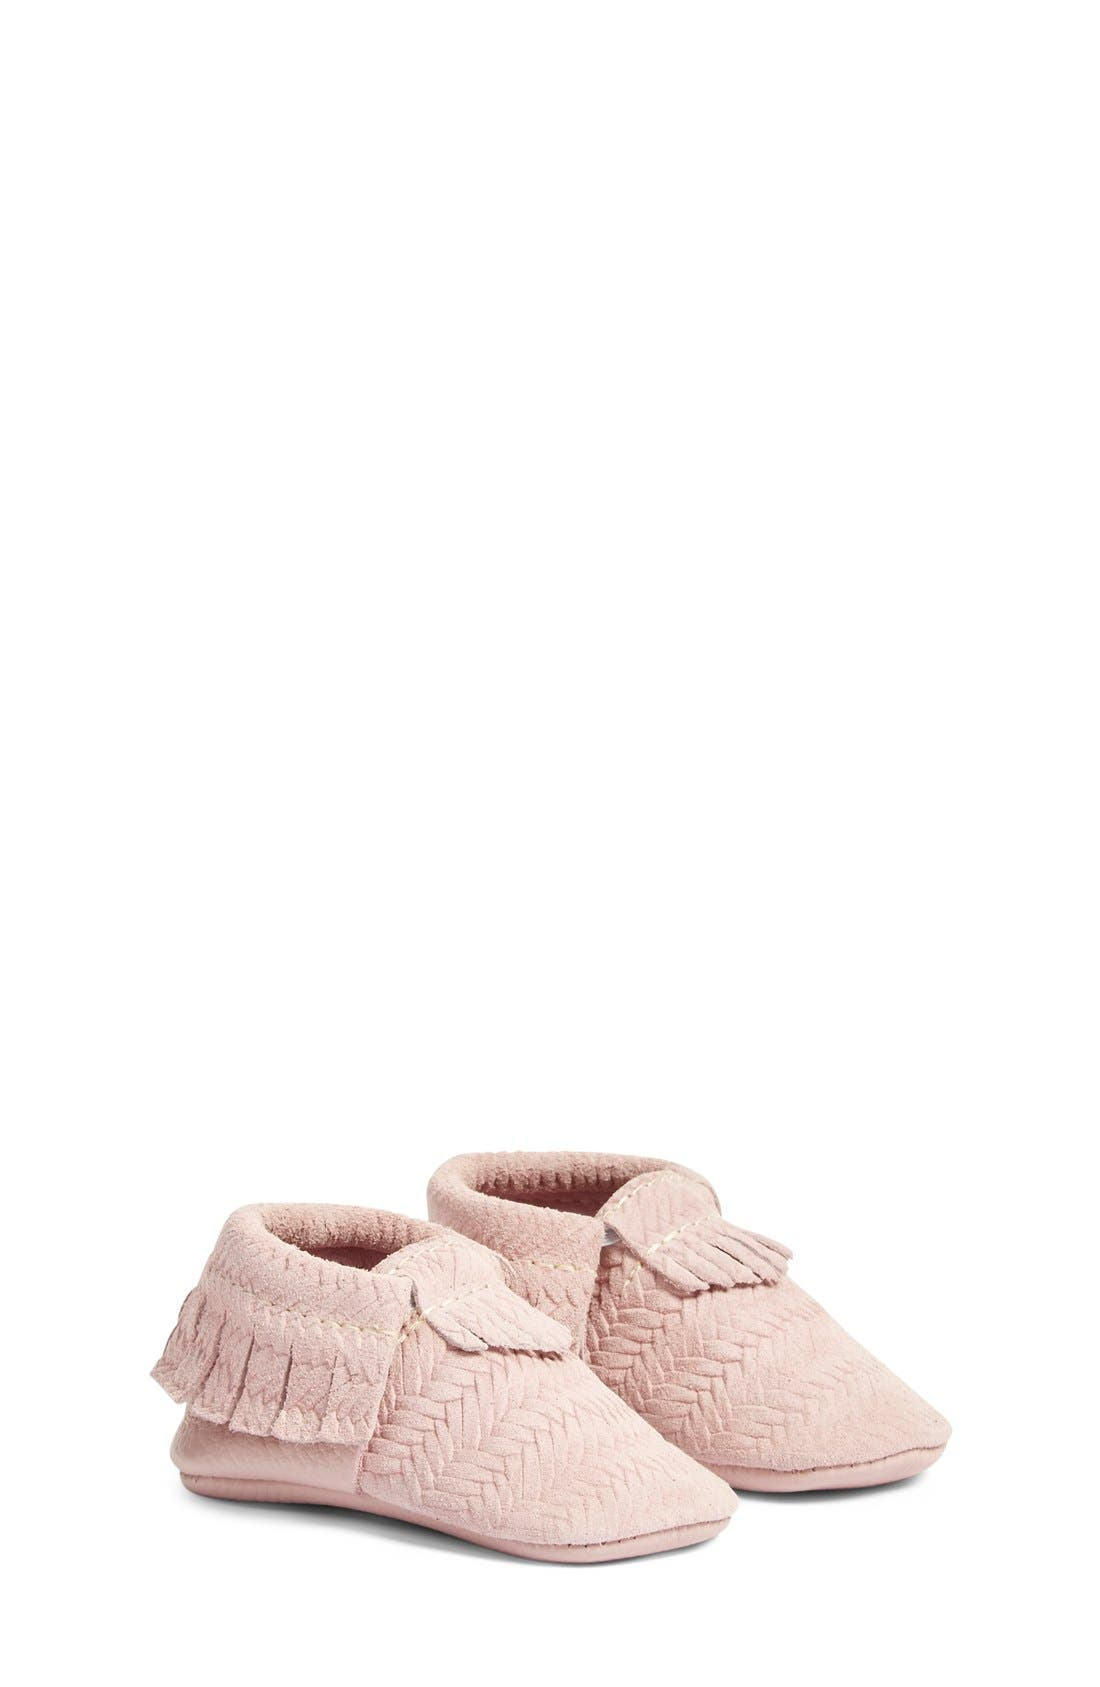 Alternate Image 1 Selected - Freshly Picked 'Cardigan' Woven Leather Moccasin (Baby)